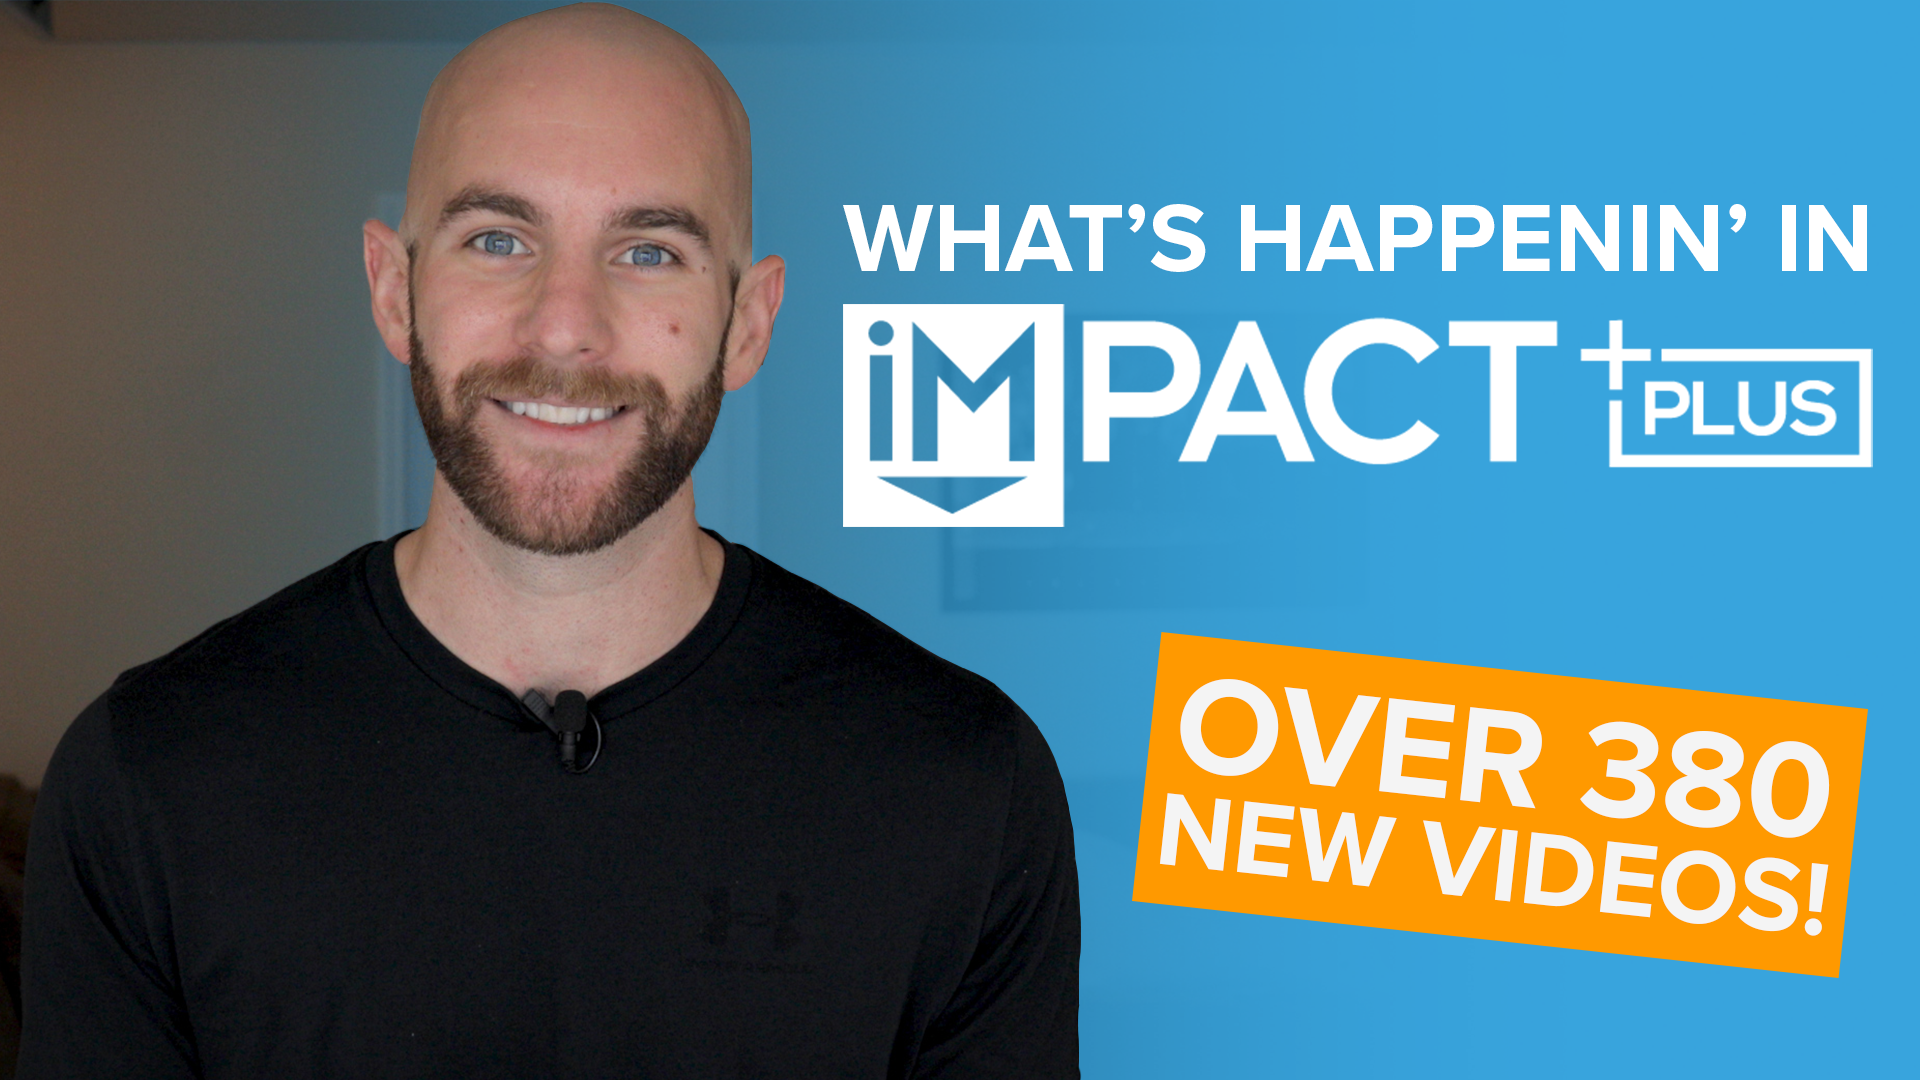 What's happenin' in IMPACT+ in under 5 minutes! (August 2020)